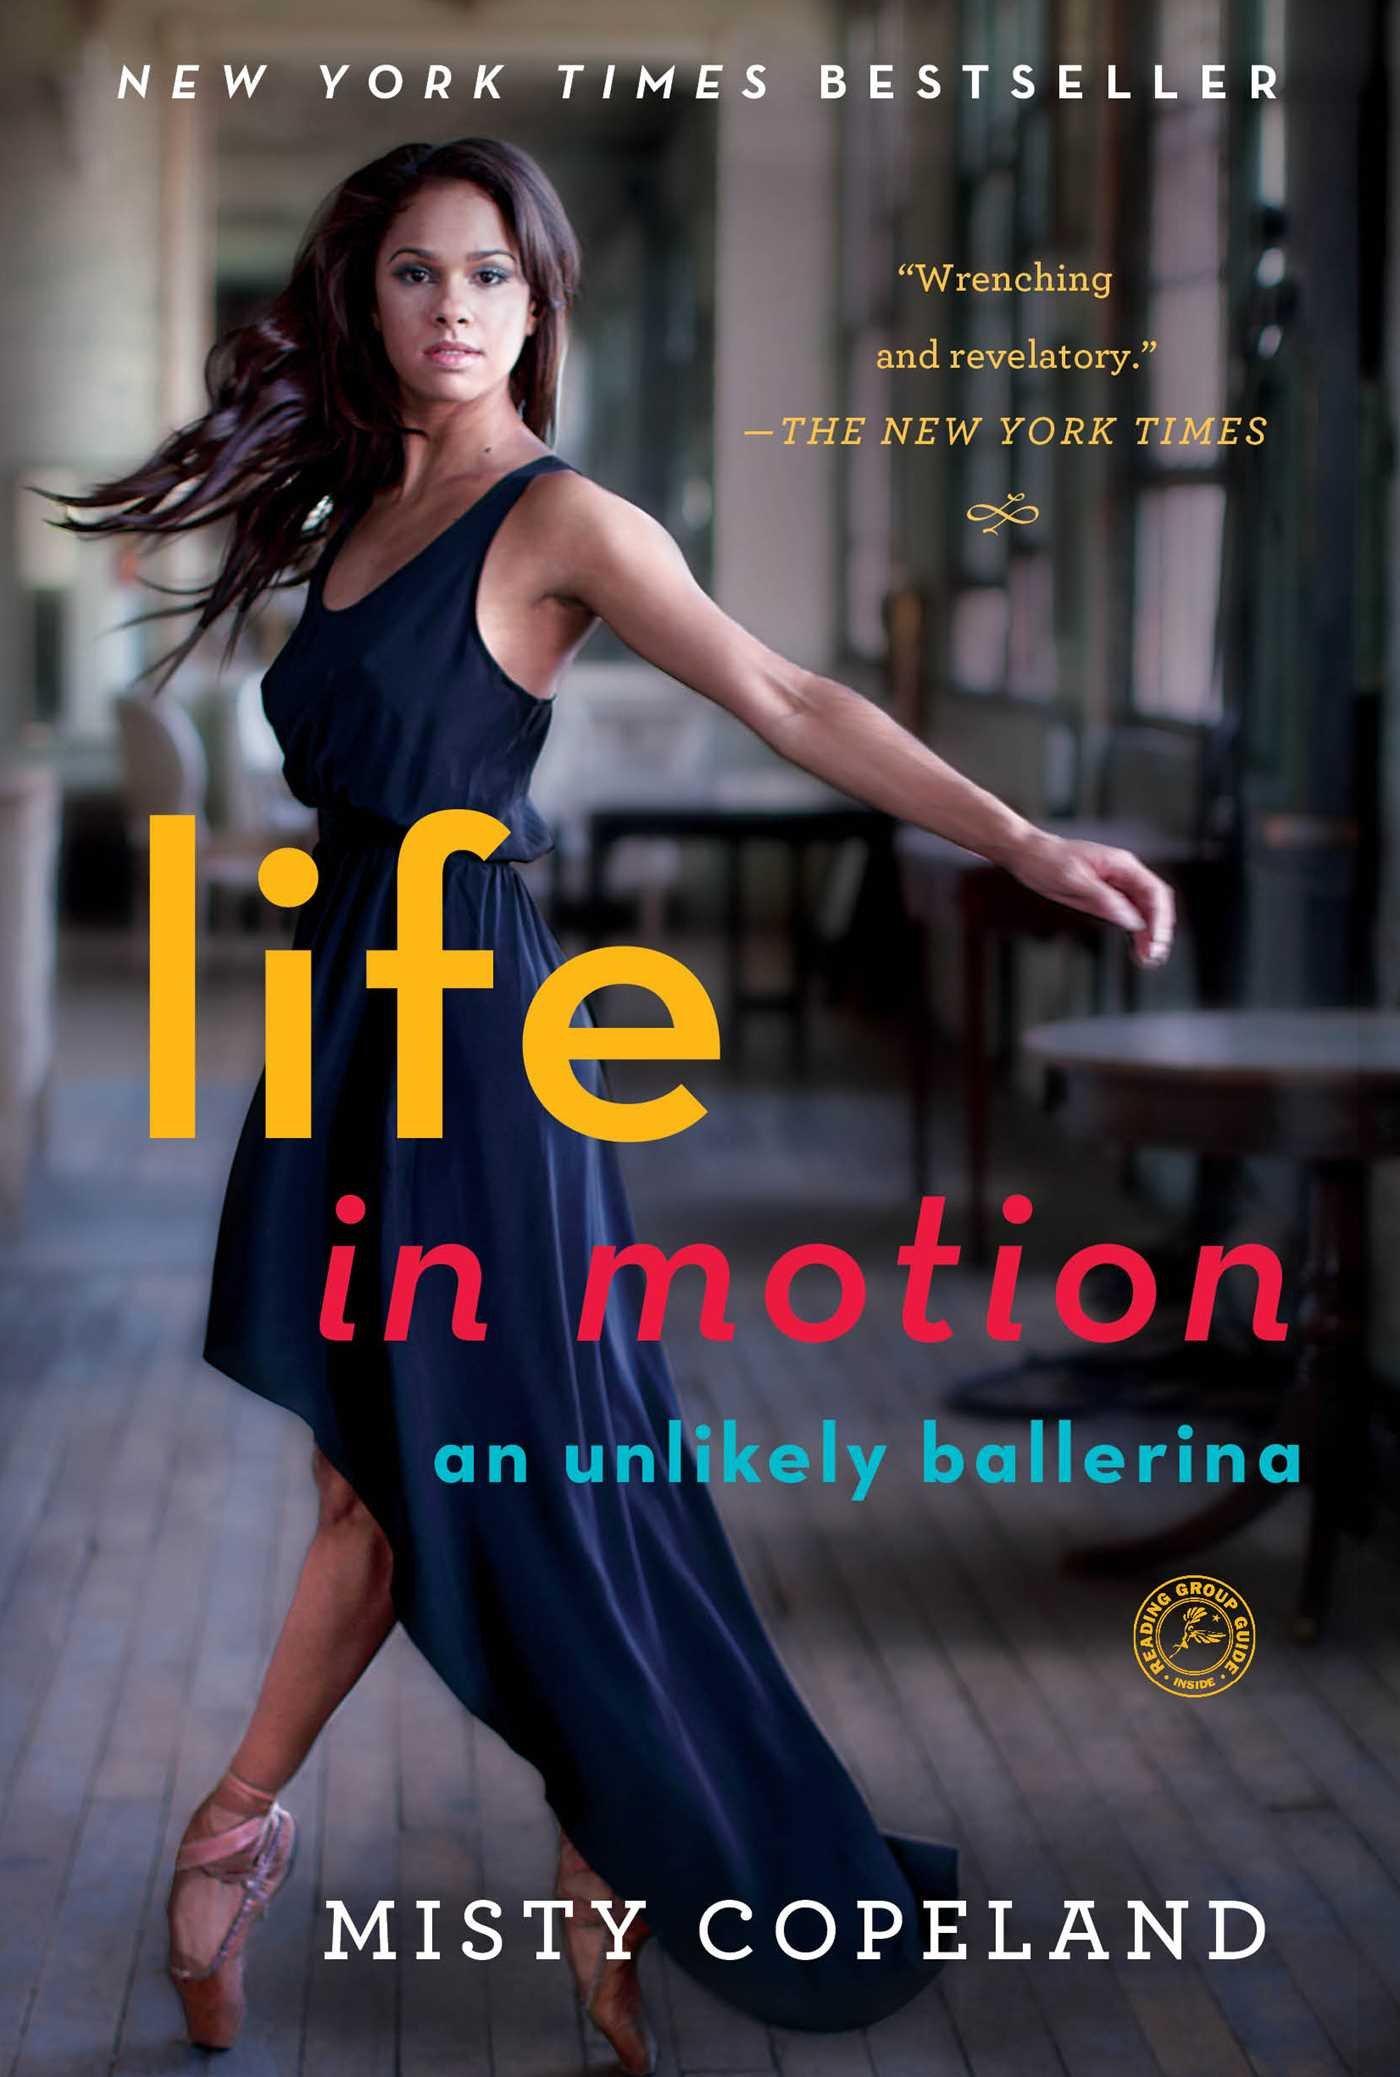 (2014) Determination meets dance in this memoir written by the history-making ballerina. -